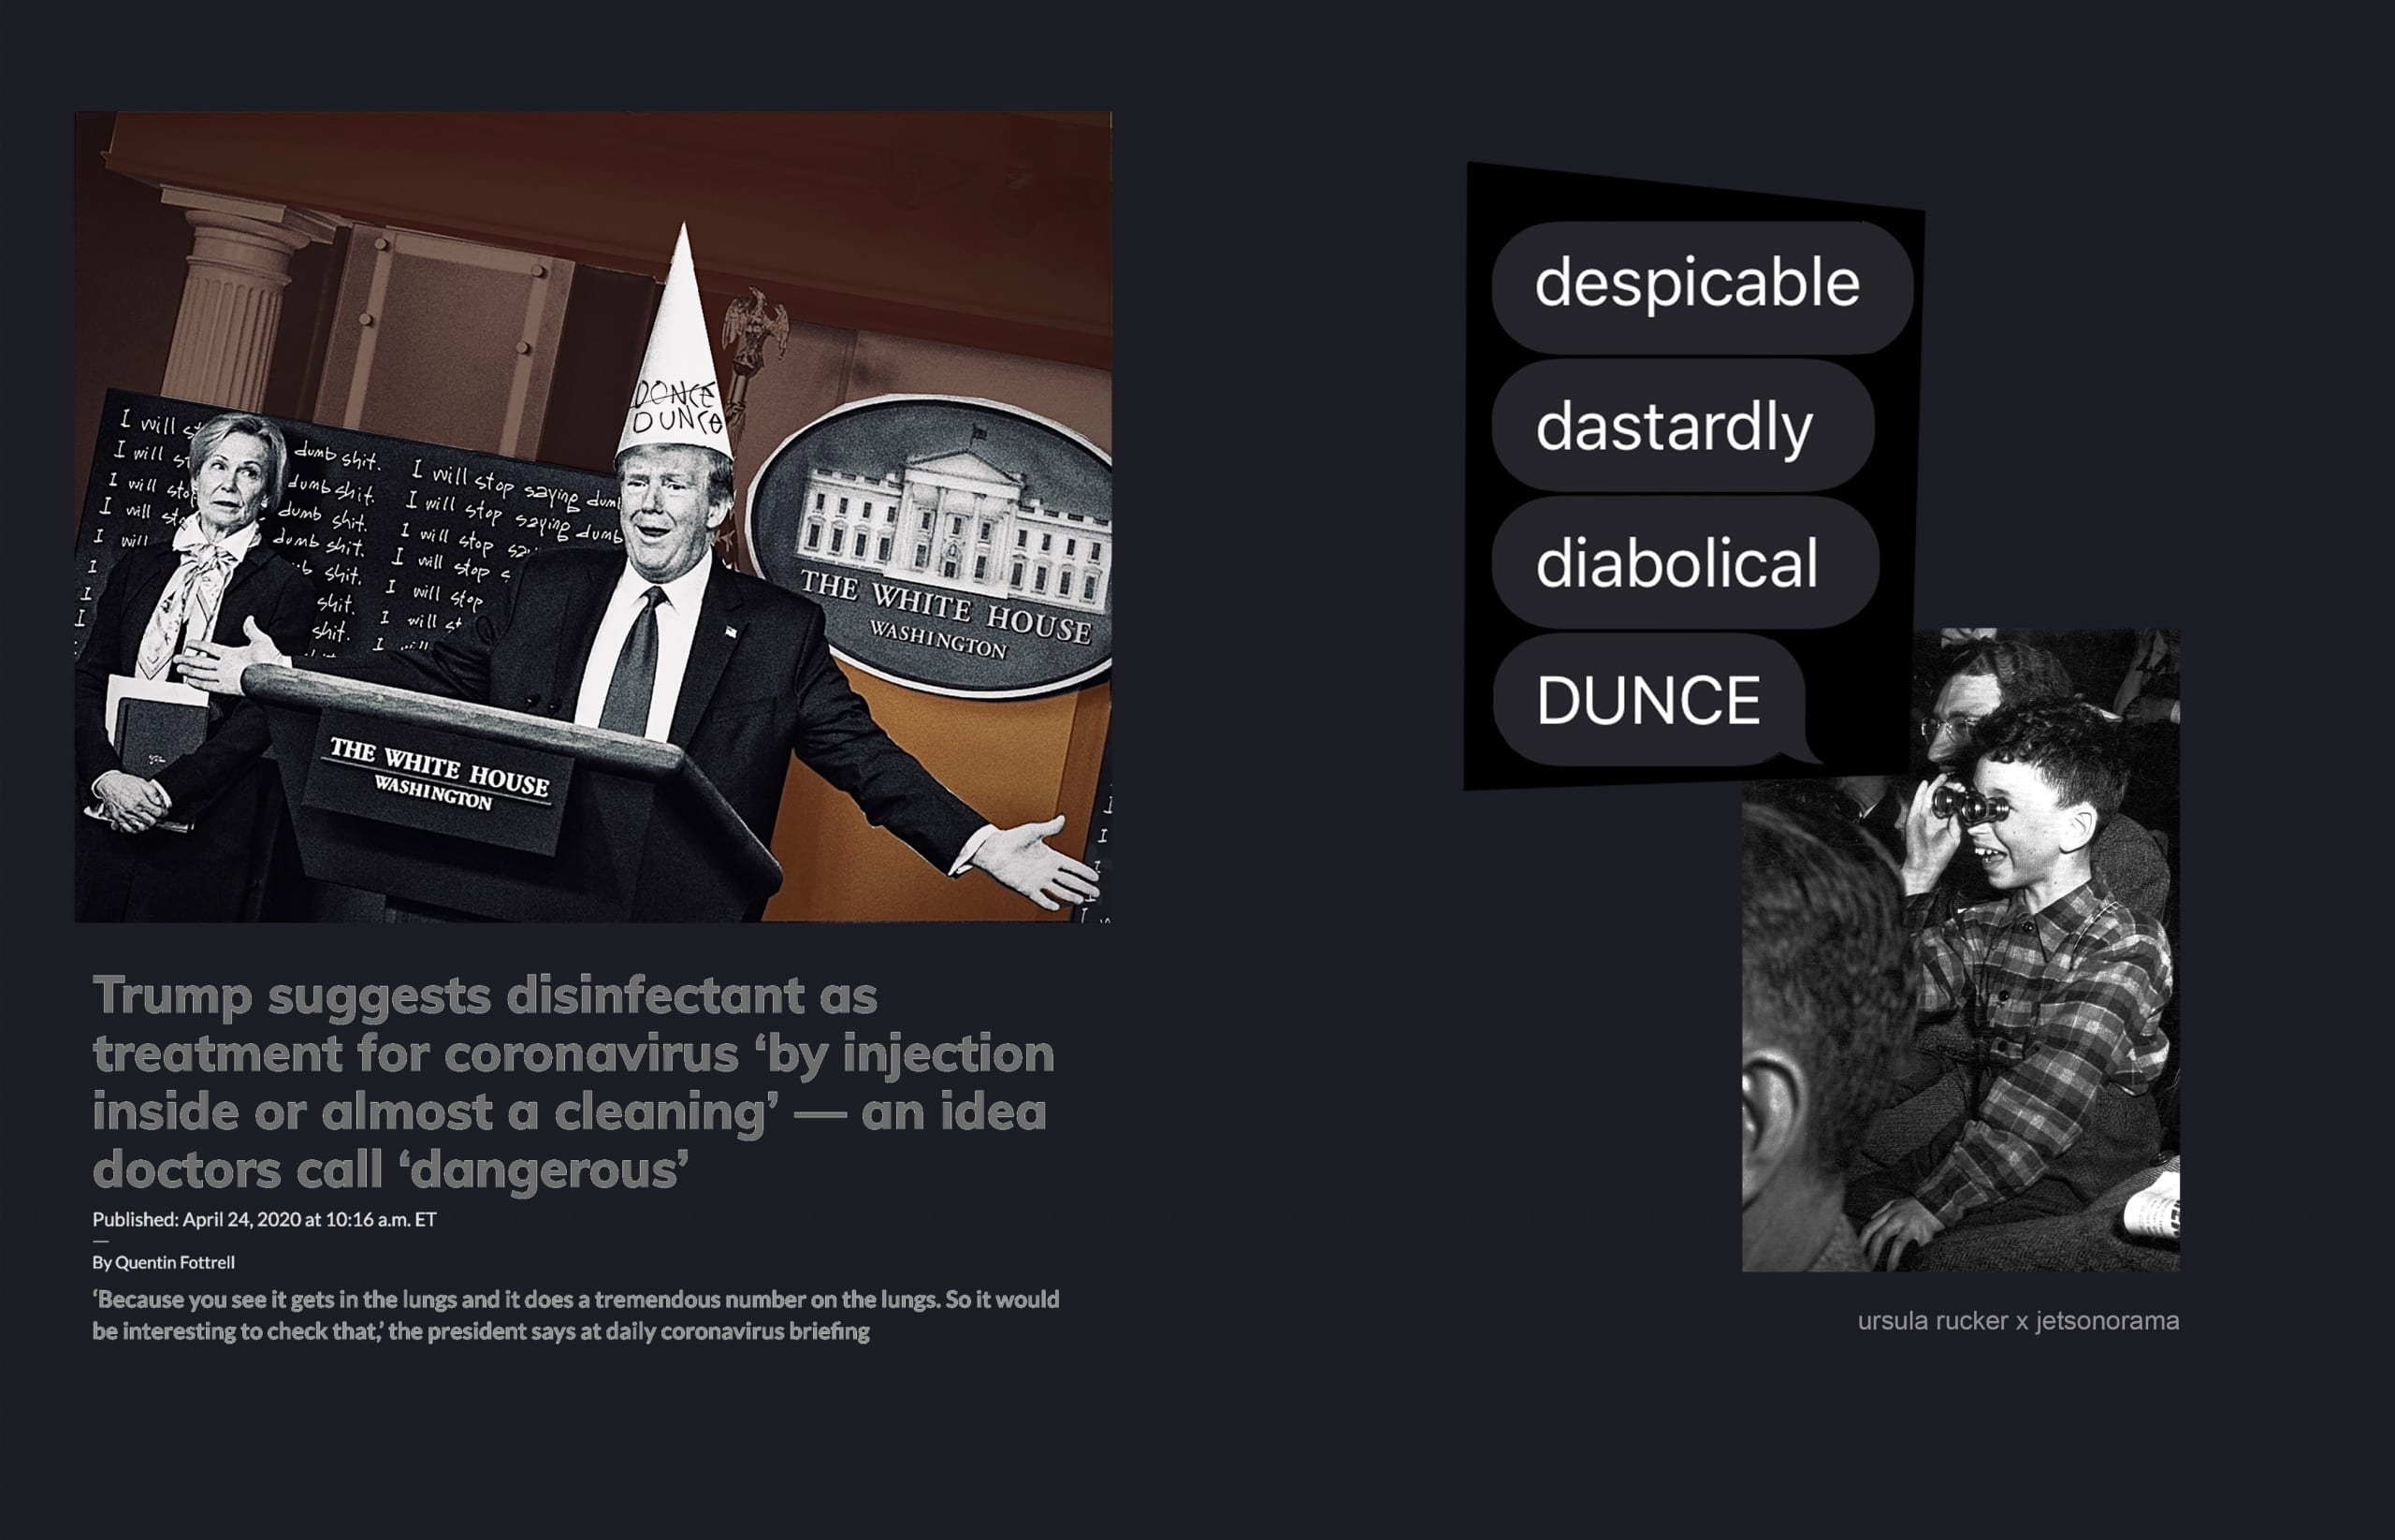 """To left, collage depicting President Donald Trump at a press briefing alongside coronavirus response coordinator Deborah Birx; image has been critically revised to include a dunce cap on Trump and include the words """"I will stop saying dumb shit"""" in the background, as if written on a chalboard; headline below collage says """"Trump suggests disinfectant as treatment for coronavirus 'by injection inside or almost a cleaning'--an idea doctors call 'dangerous'"""" (originally from marketwatch.com, April 24, 2020). On right a short poem appears, superimposed over a mid-twentieth century black and white photograph by Weegee of a child sitting in a crowd and looking through binoculars. The poem word bubbles read """"despicable, dastardly, diabolical, dunce."""""""